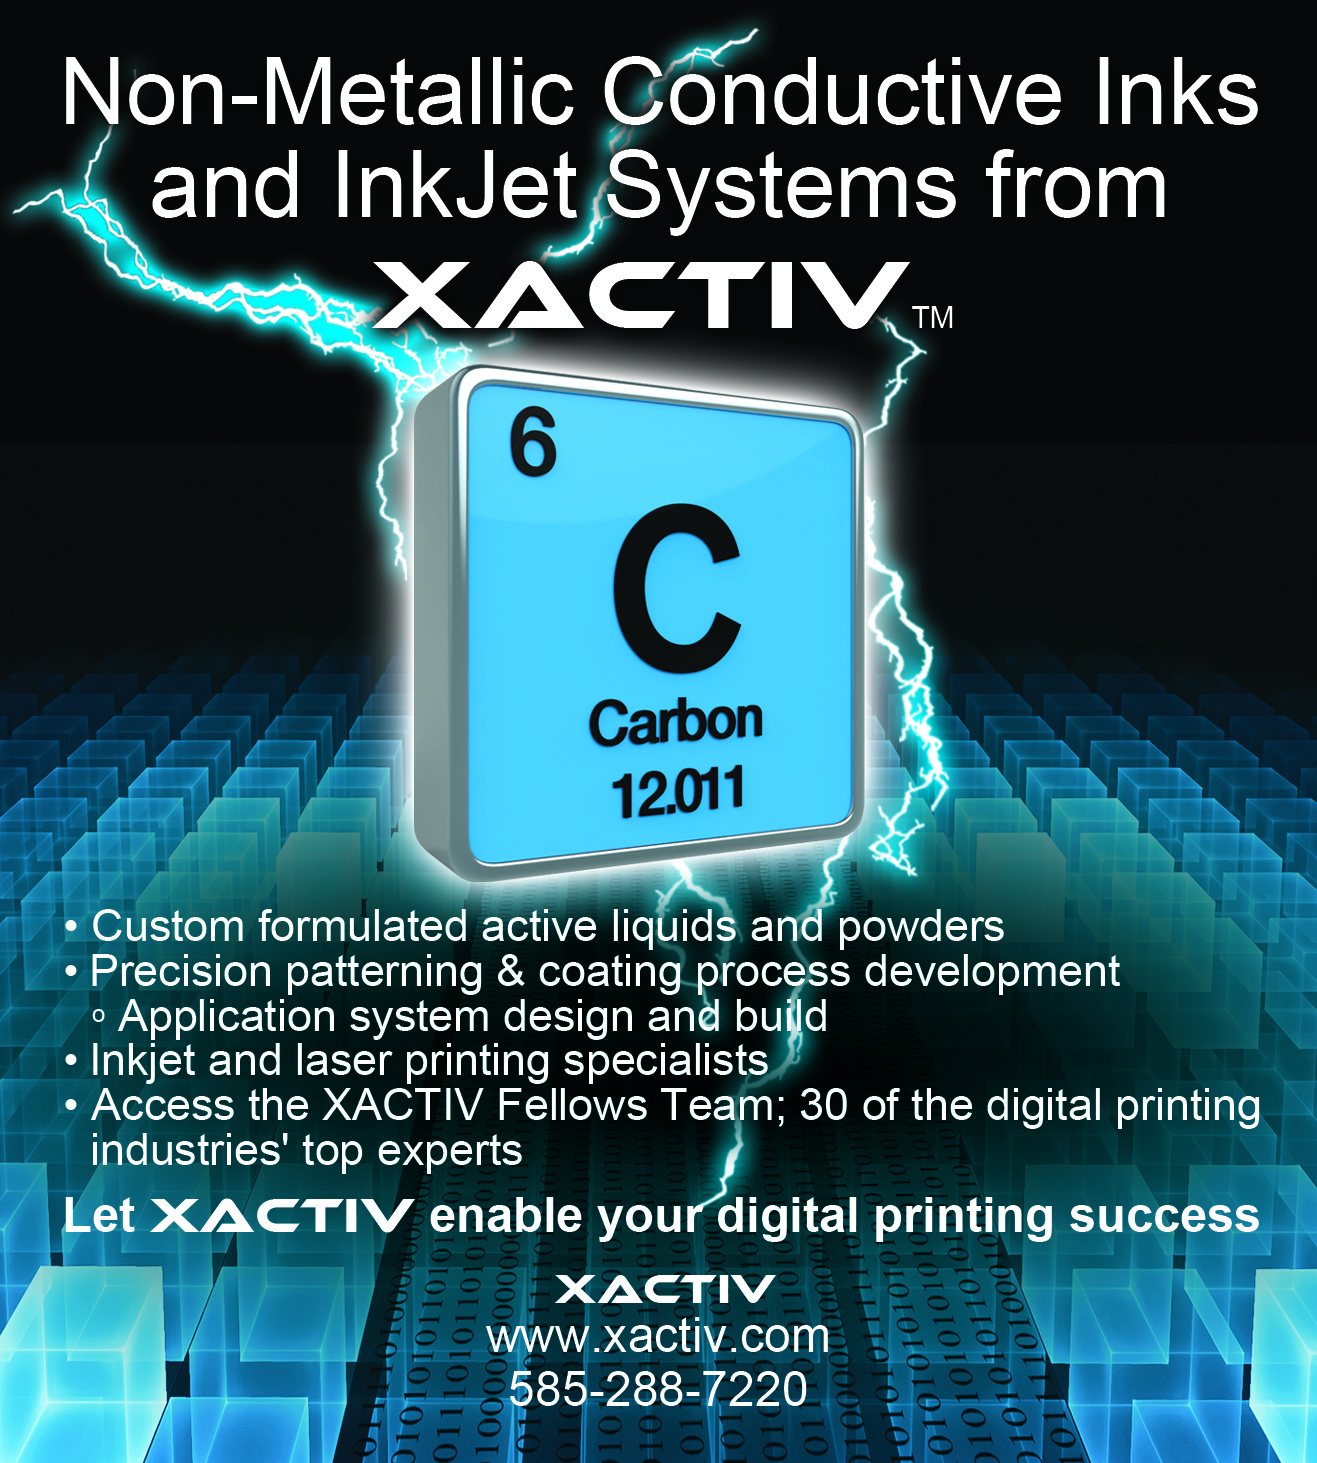 XACTIV INK World magazine